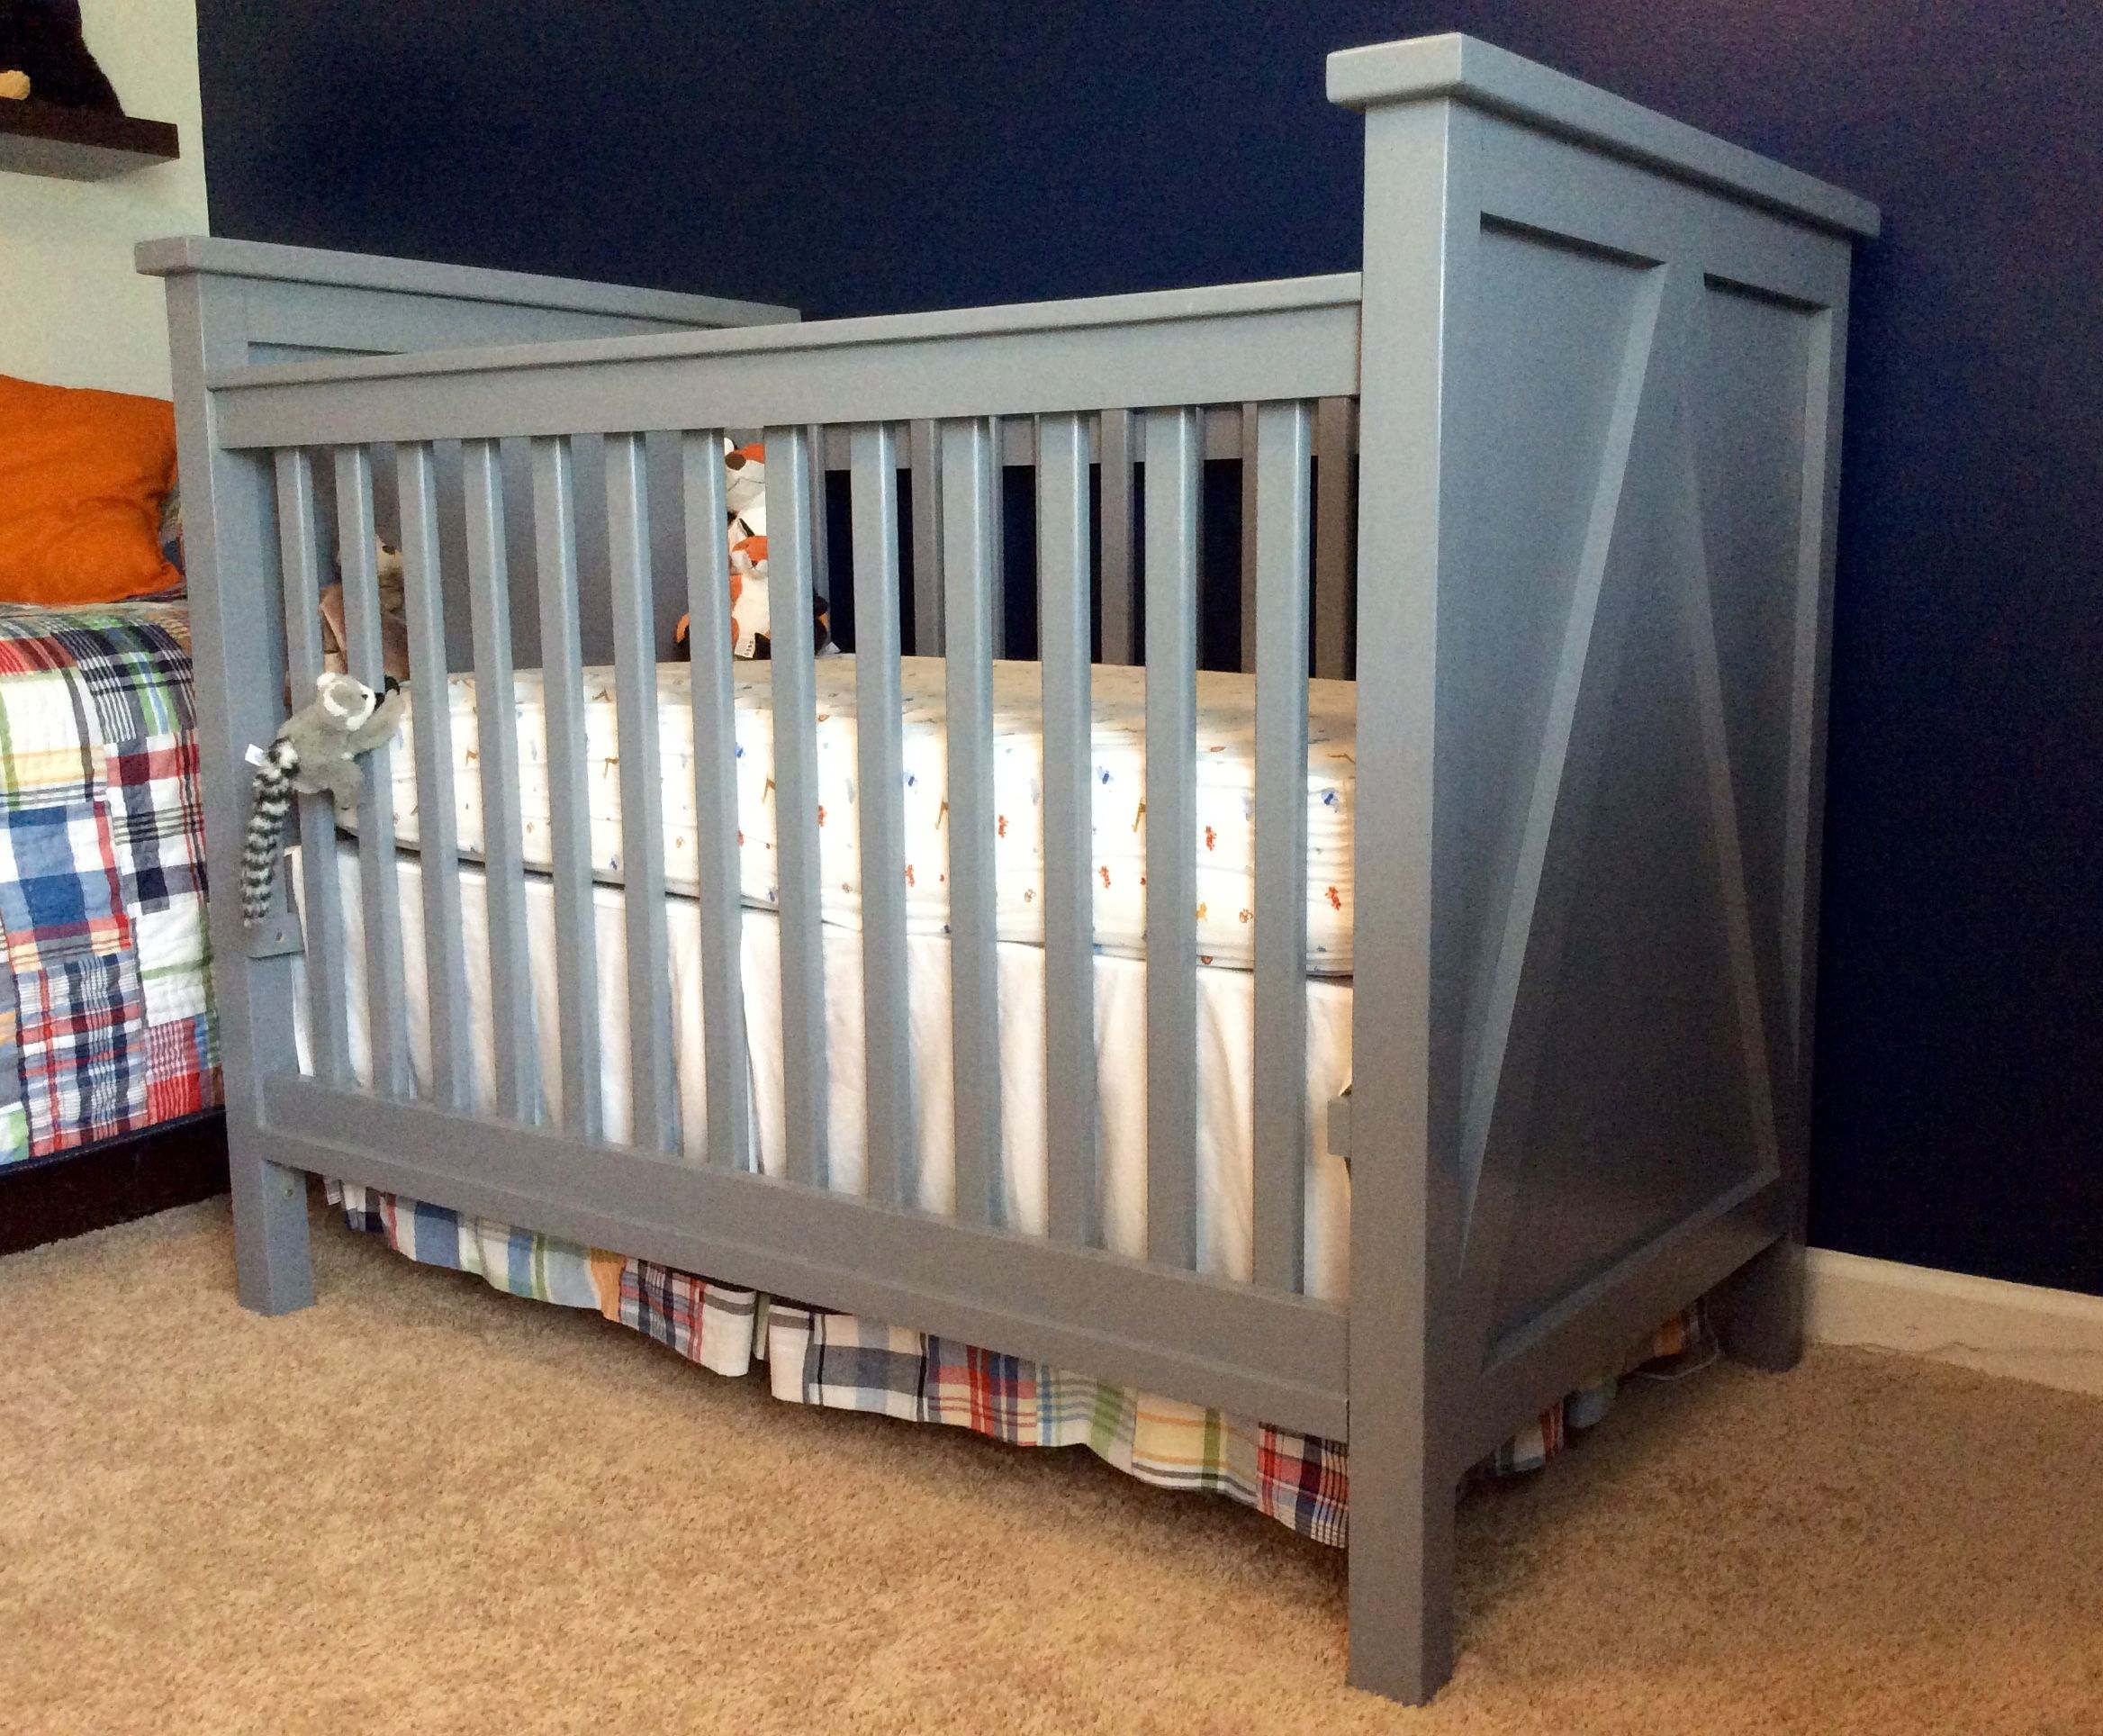 Crib for Baby #3 | Do It Yourself Home Projects from Ana ...